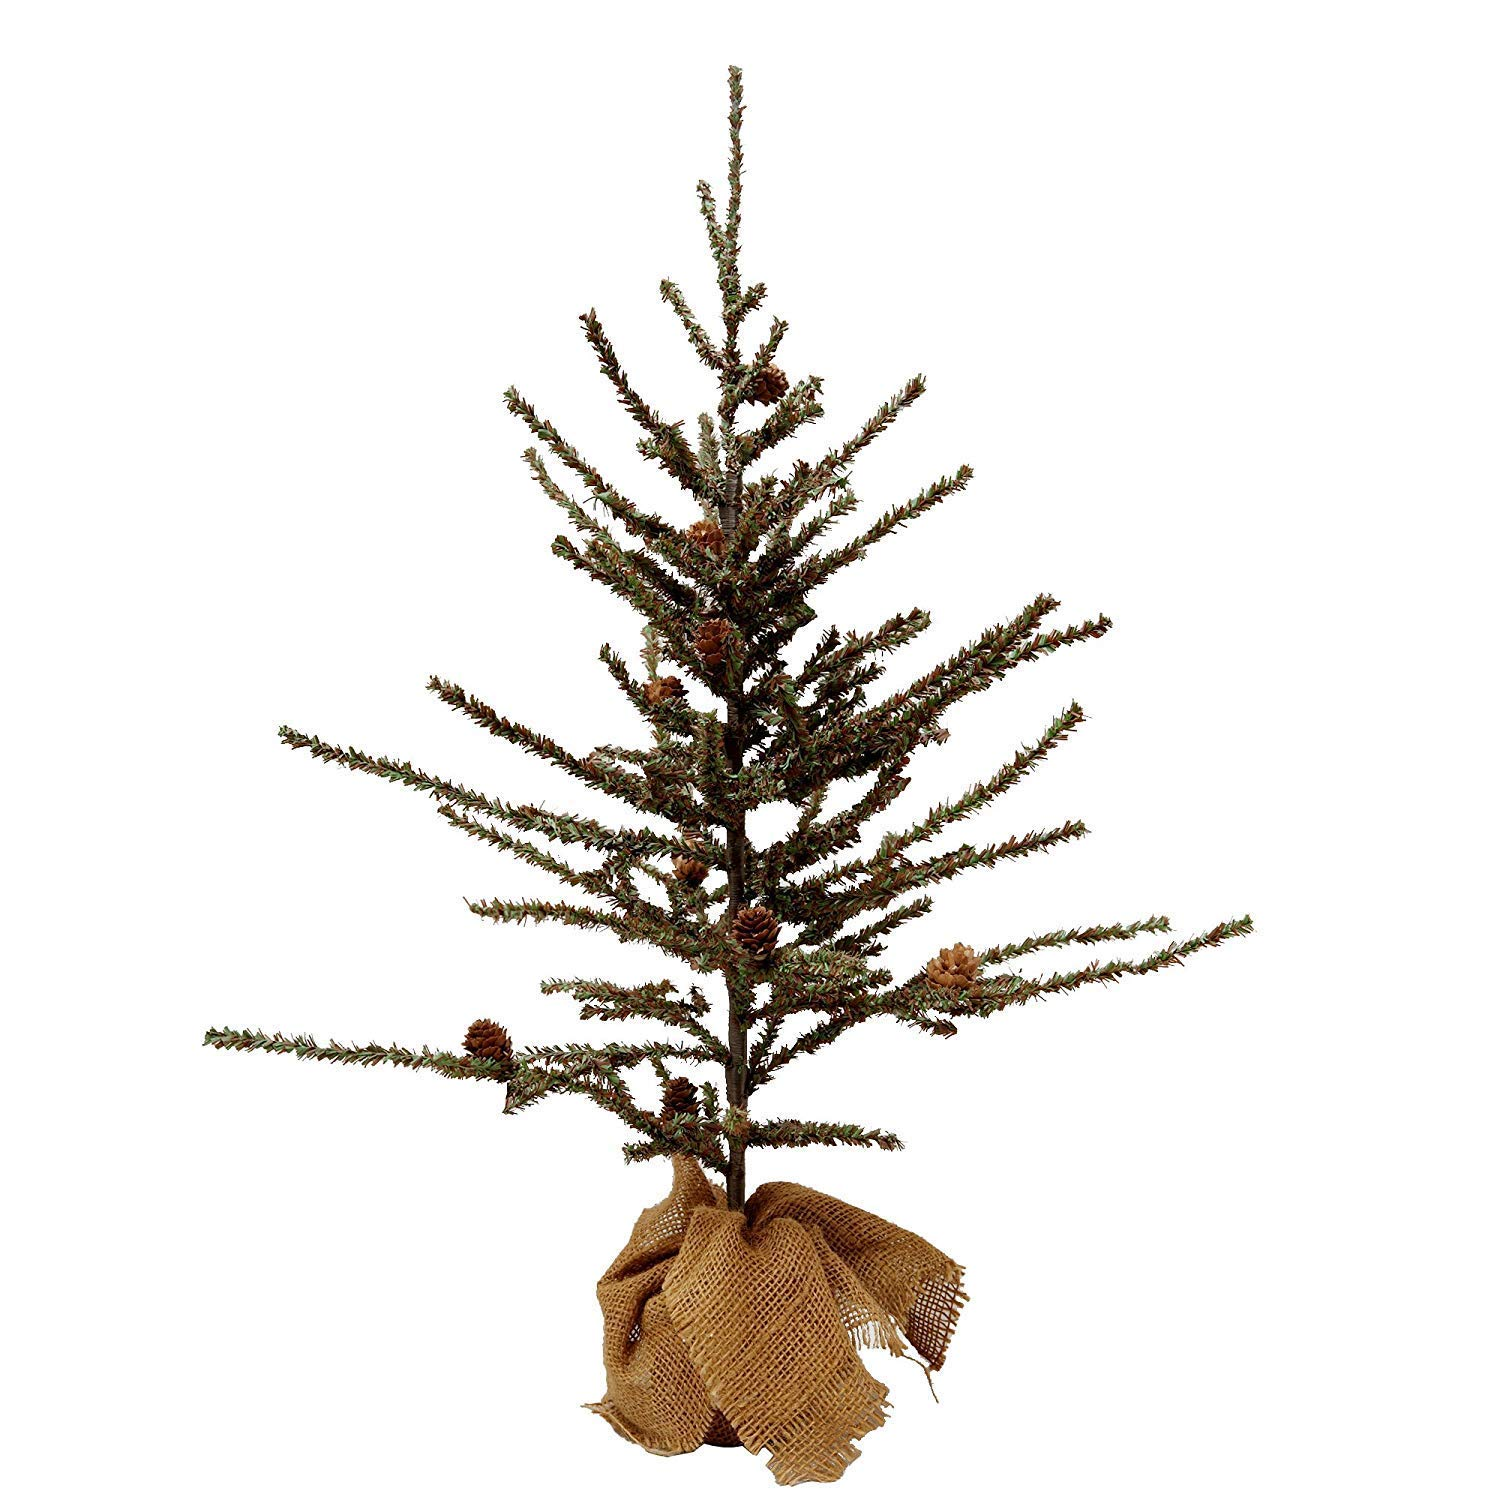 VGIA Small Home Decoration Tabletop 28'' Christmas Tree with Wood Stand, Green by VGIA (Image #2)